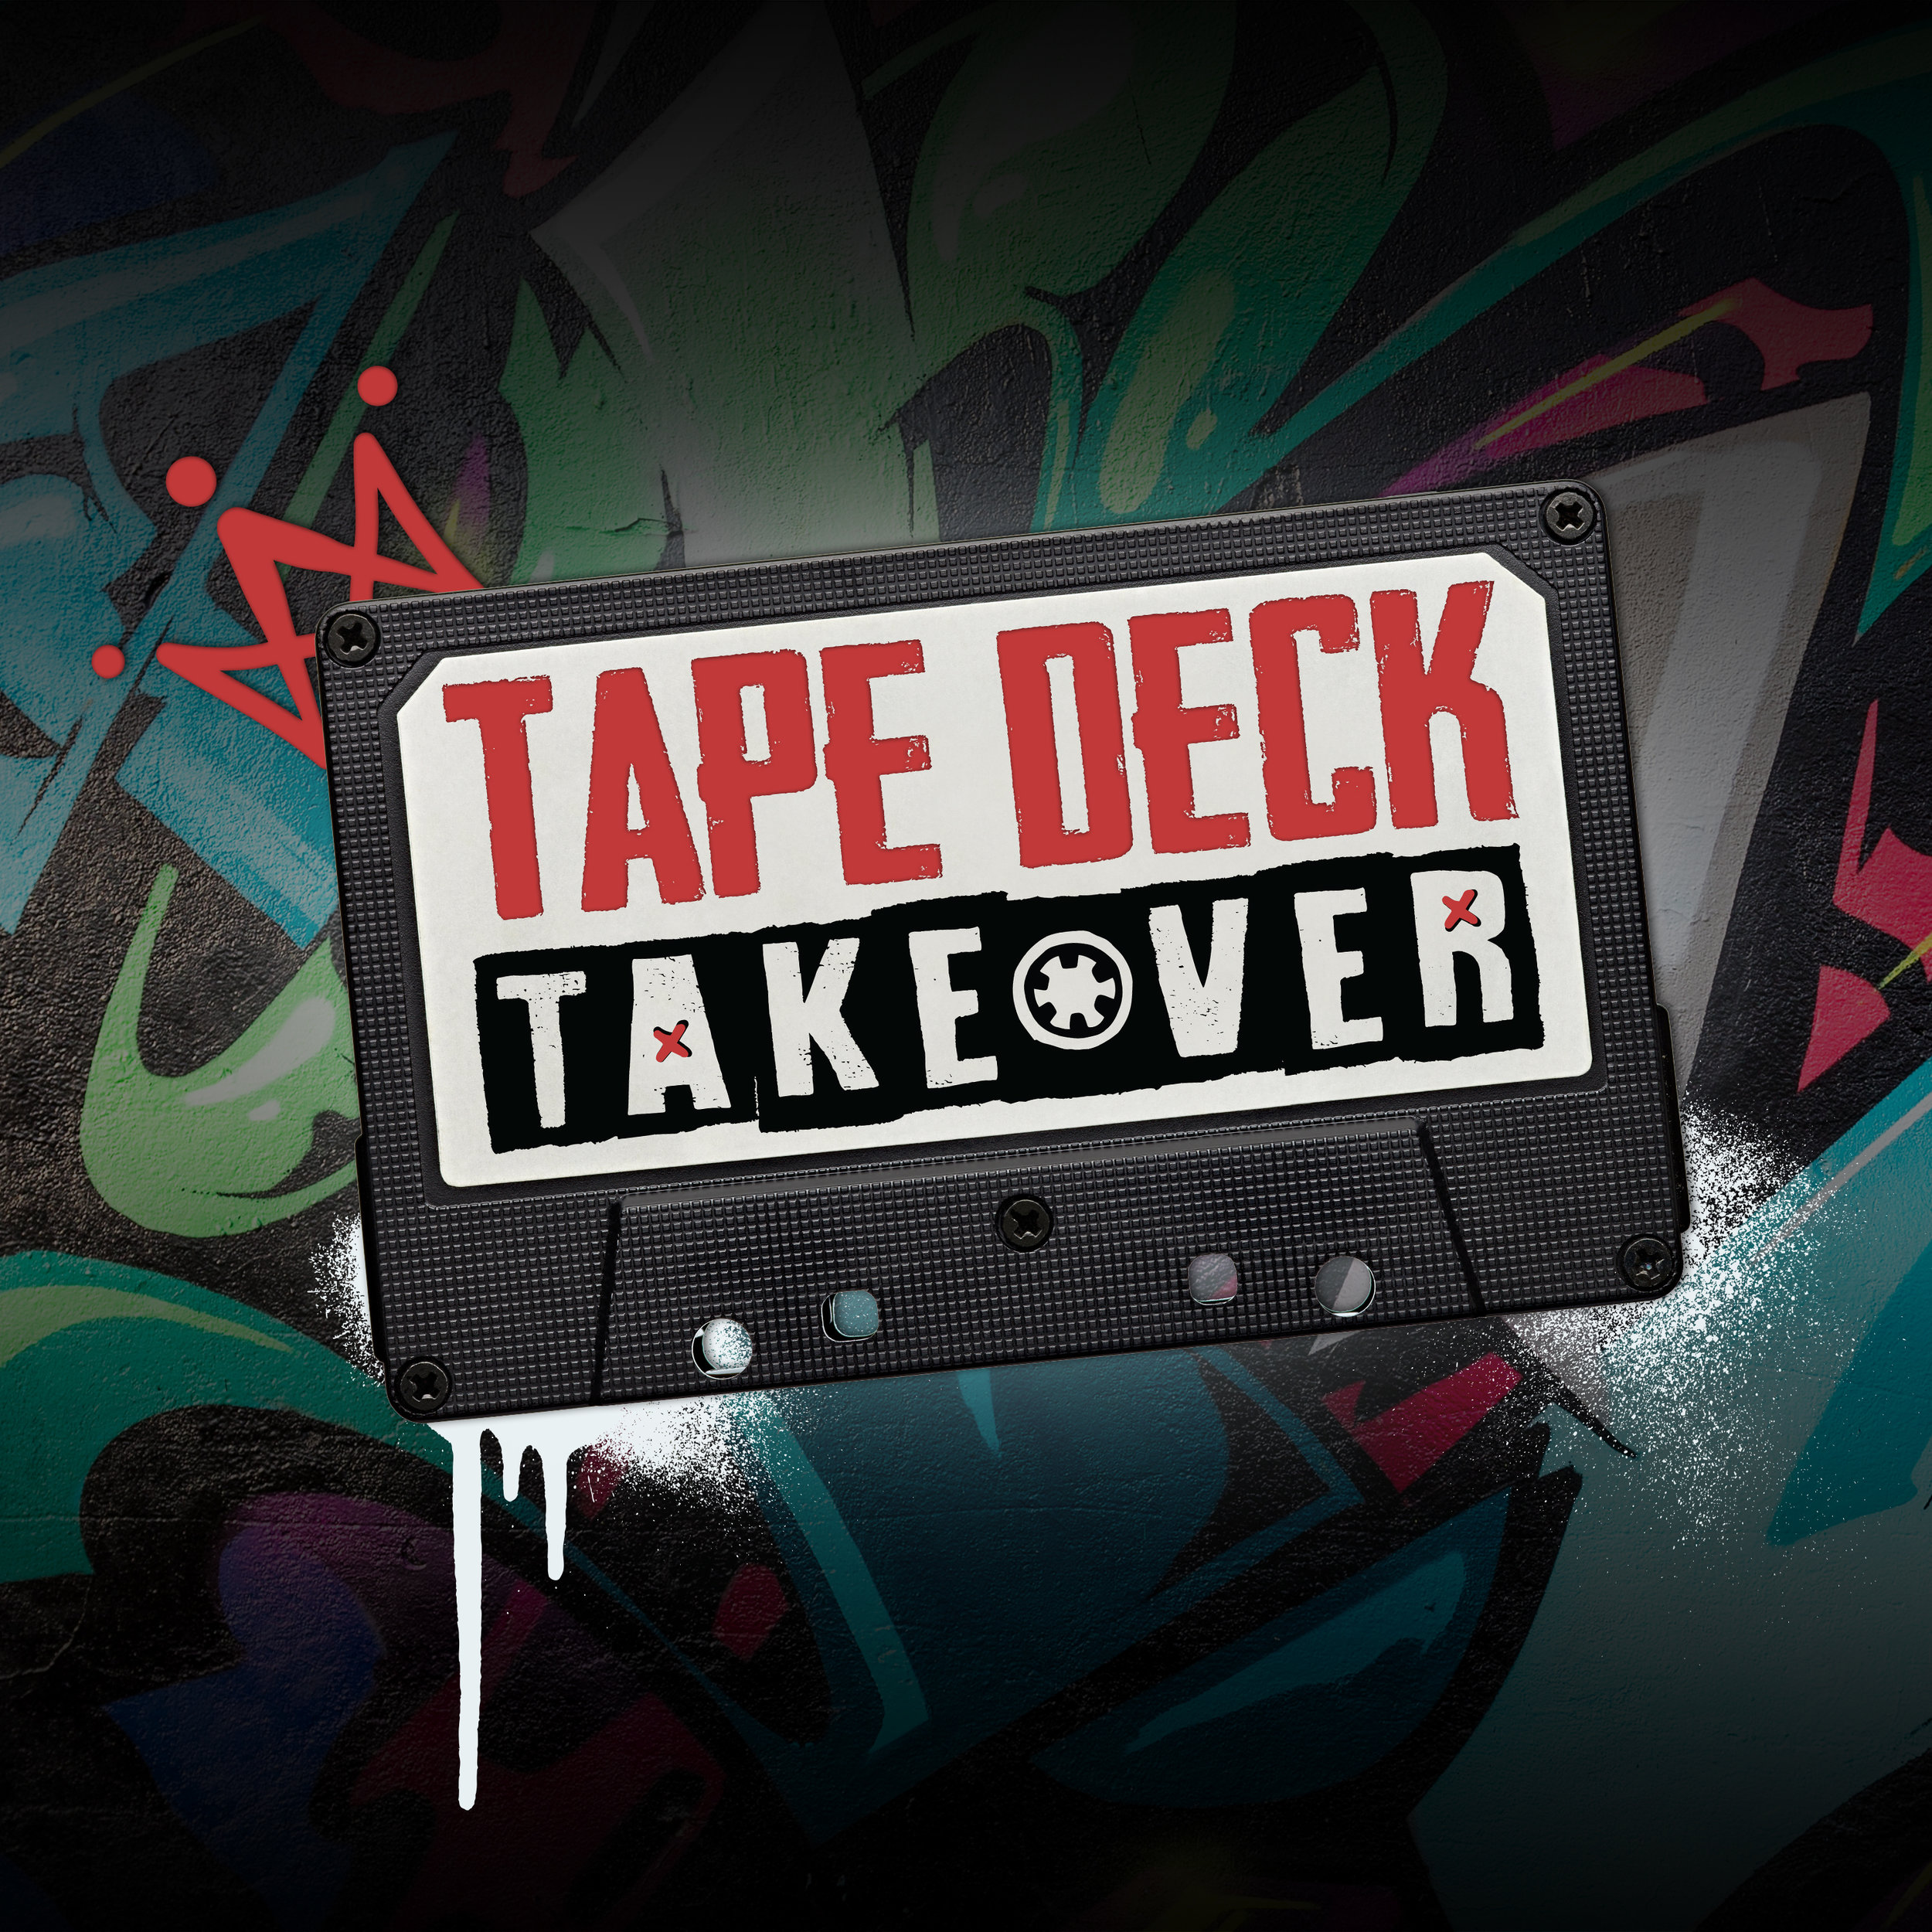 Hard Rock Hotel & Casino Sioux City: Tape Deck Take Over